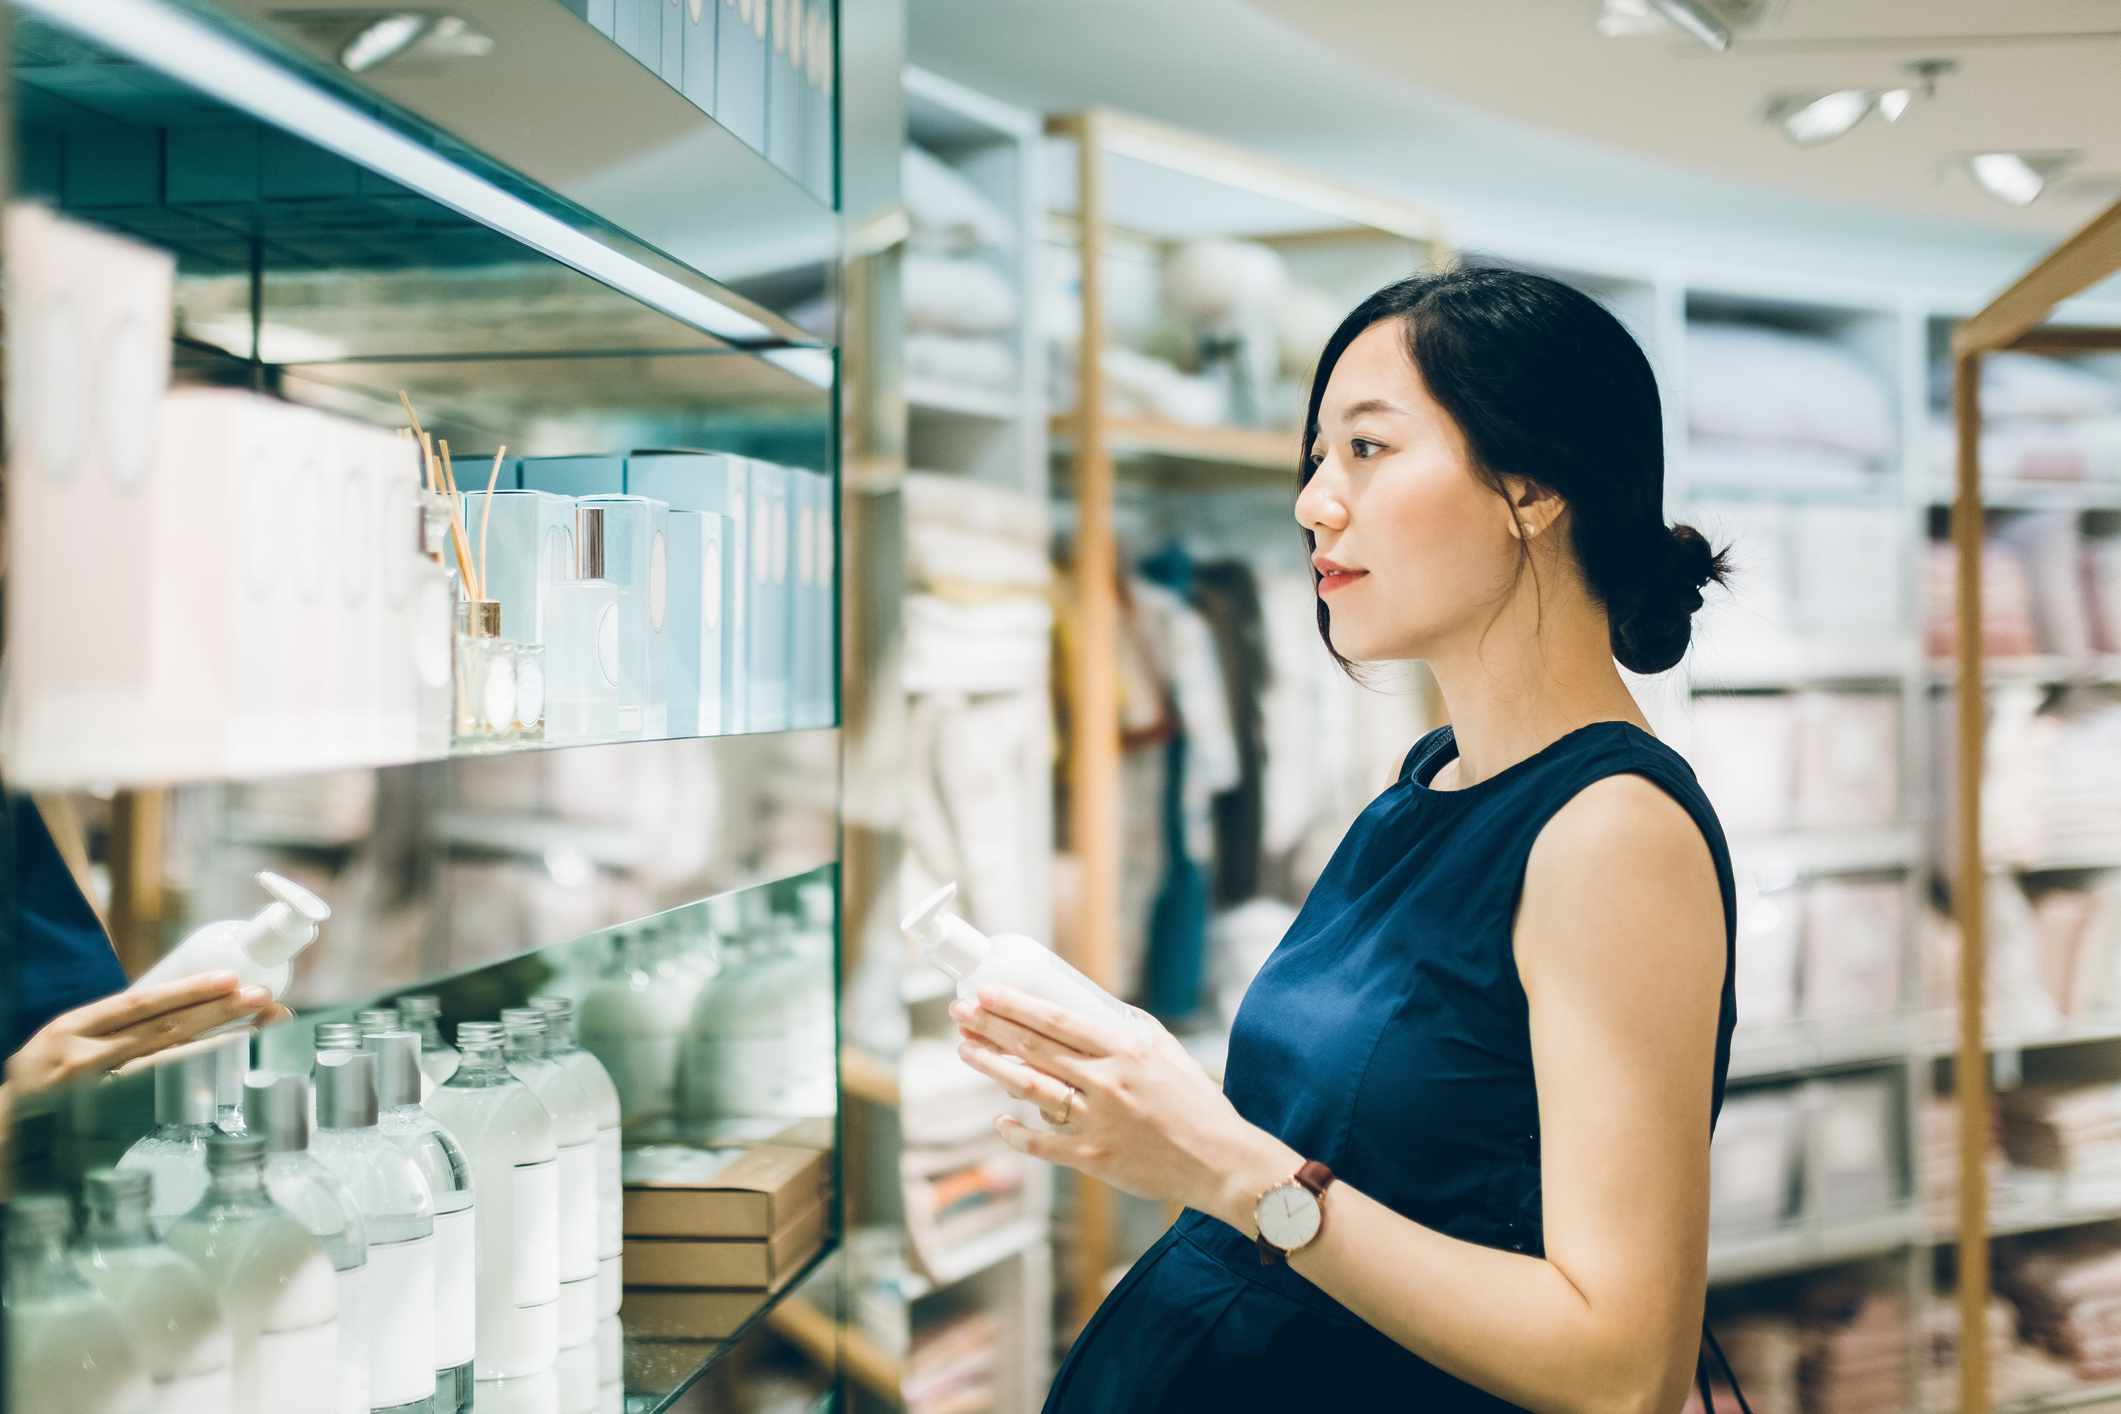 A pregnant Asian woman looks at cosmetics on a shelf at the store.